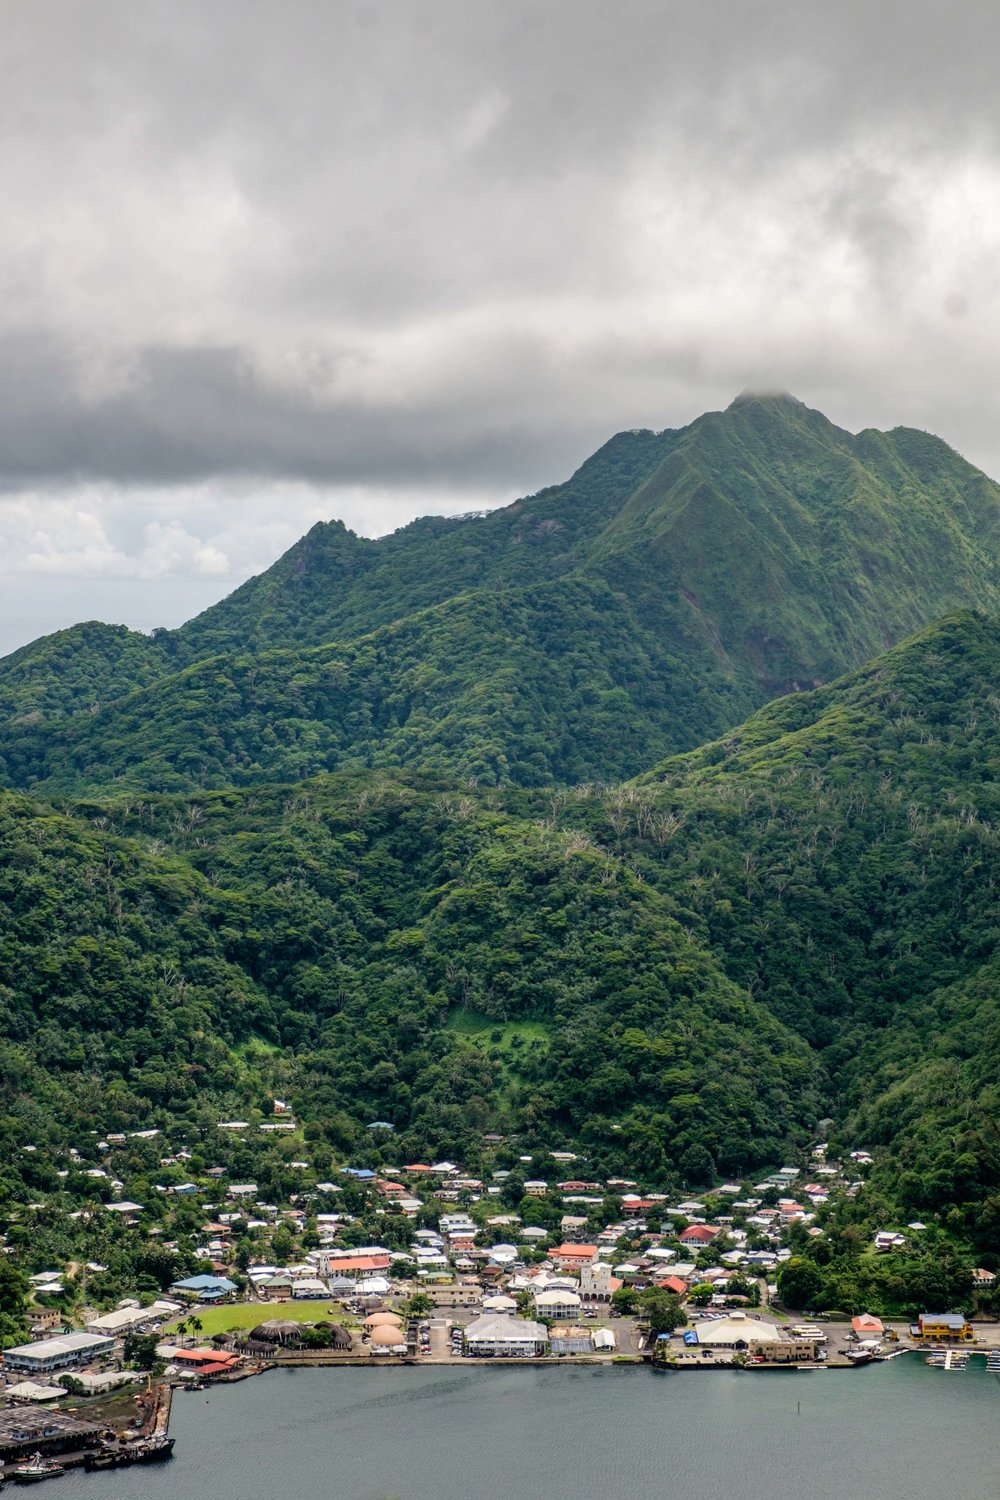 Getting high into the mountains on Tutuila allows you to see Pago Pago in an enitrely new way.